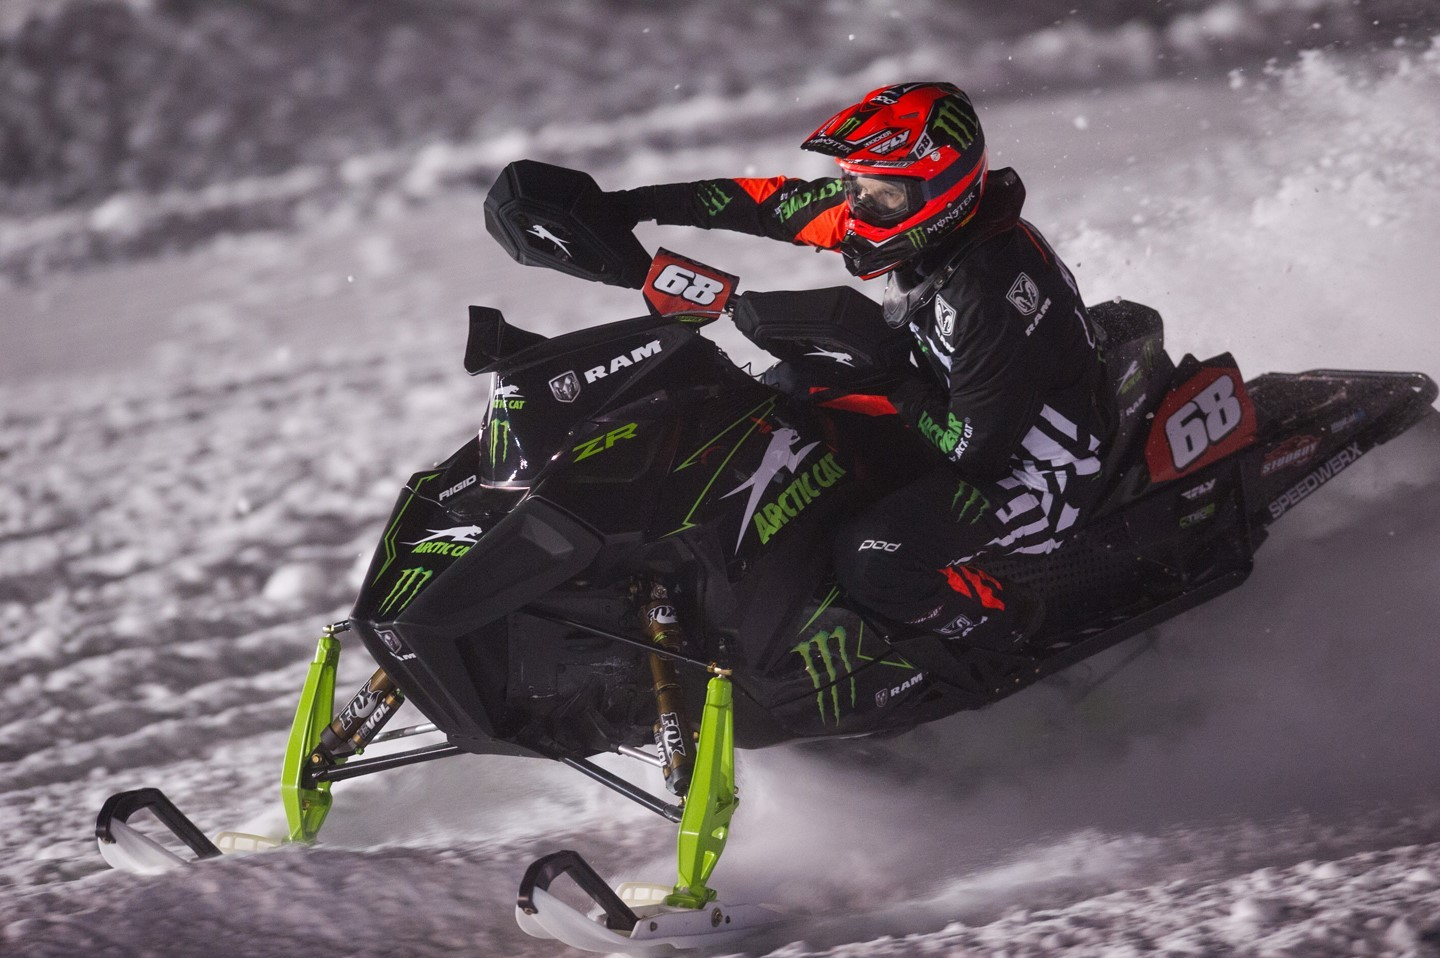 Western Power Sports Inc Distributor Of Aftermarket Powersports 2004 Polaris Sportsman 700 Fuel Filter Pod Active Welcomes Snocross Legend Tucker Hibbert To The Team